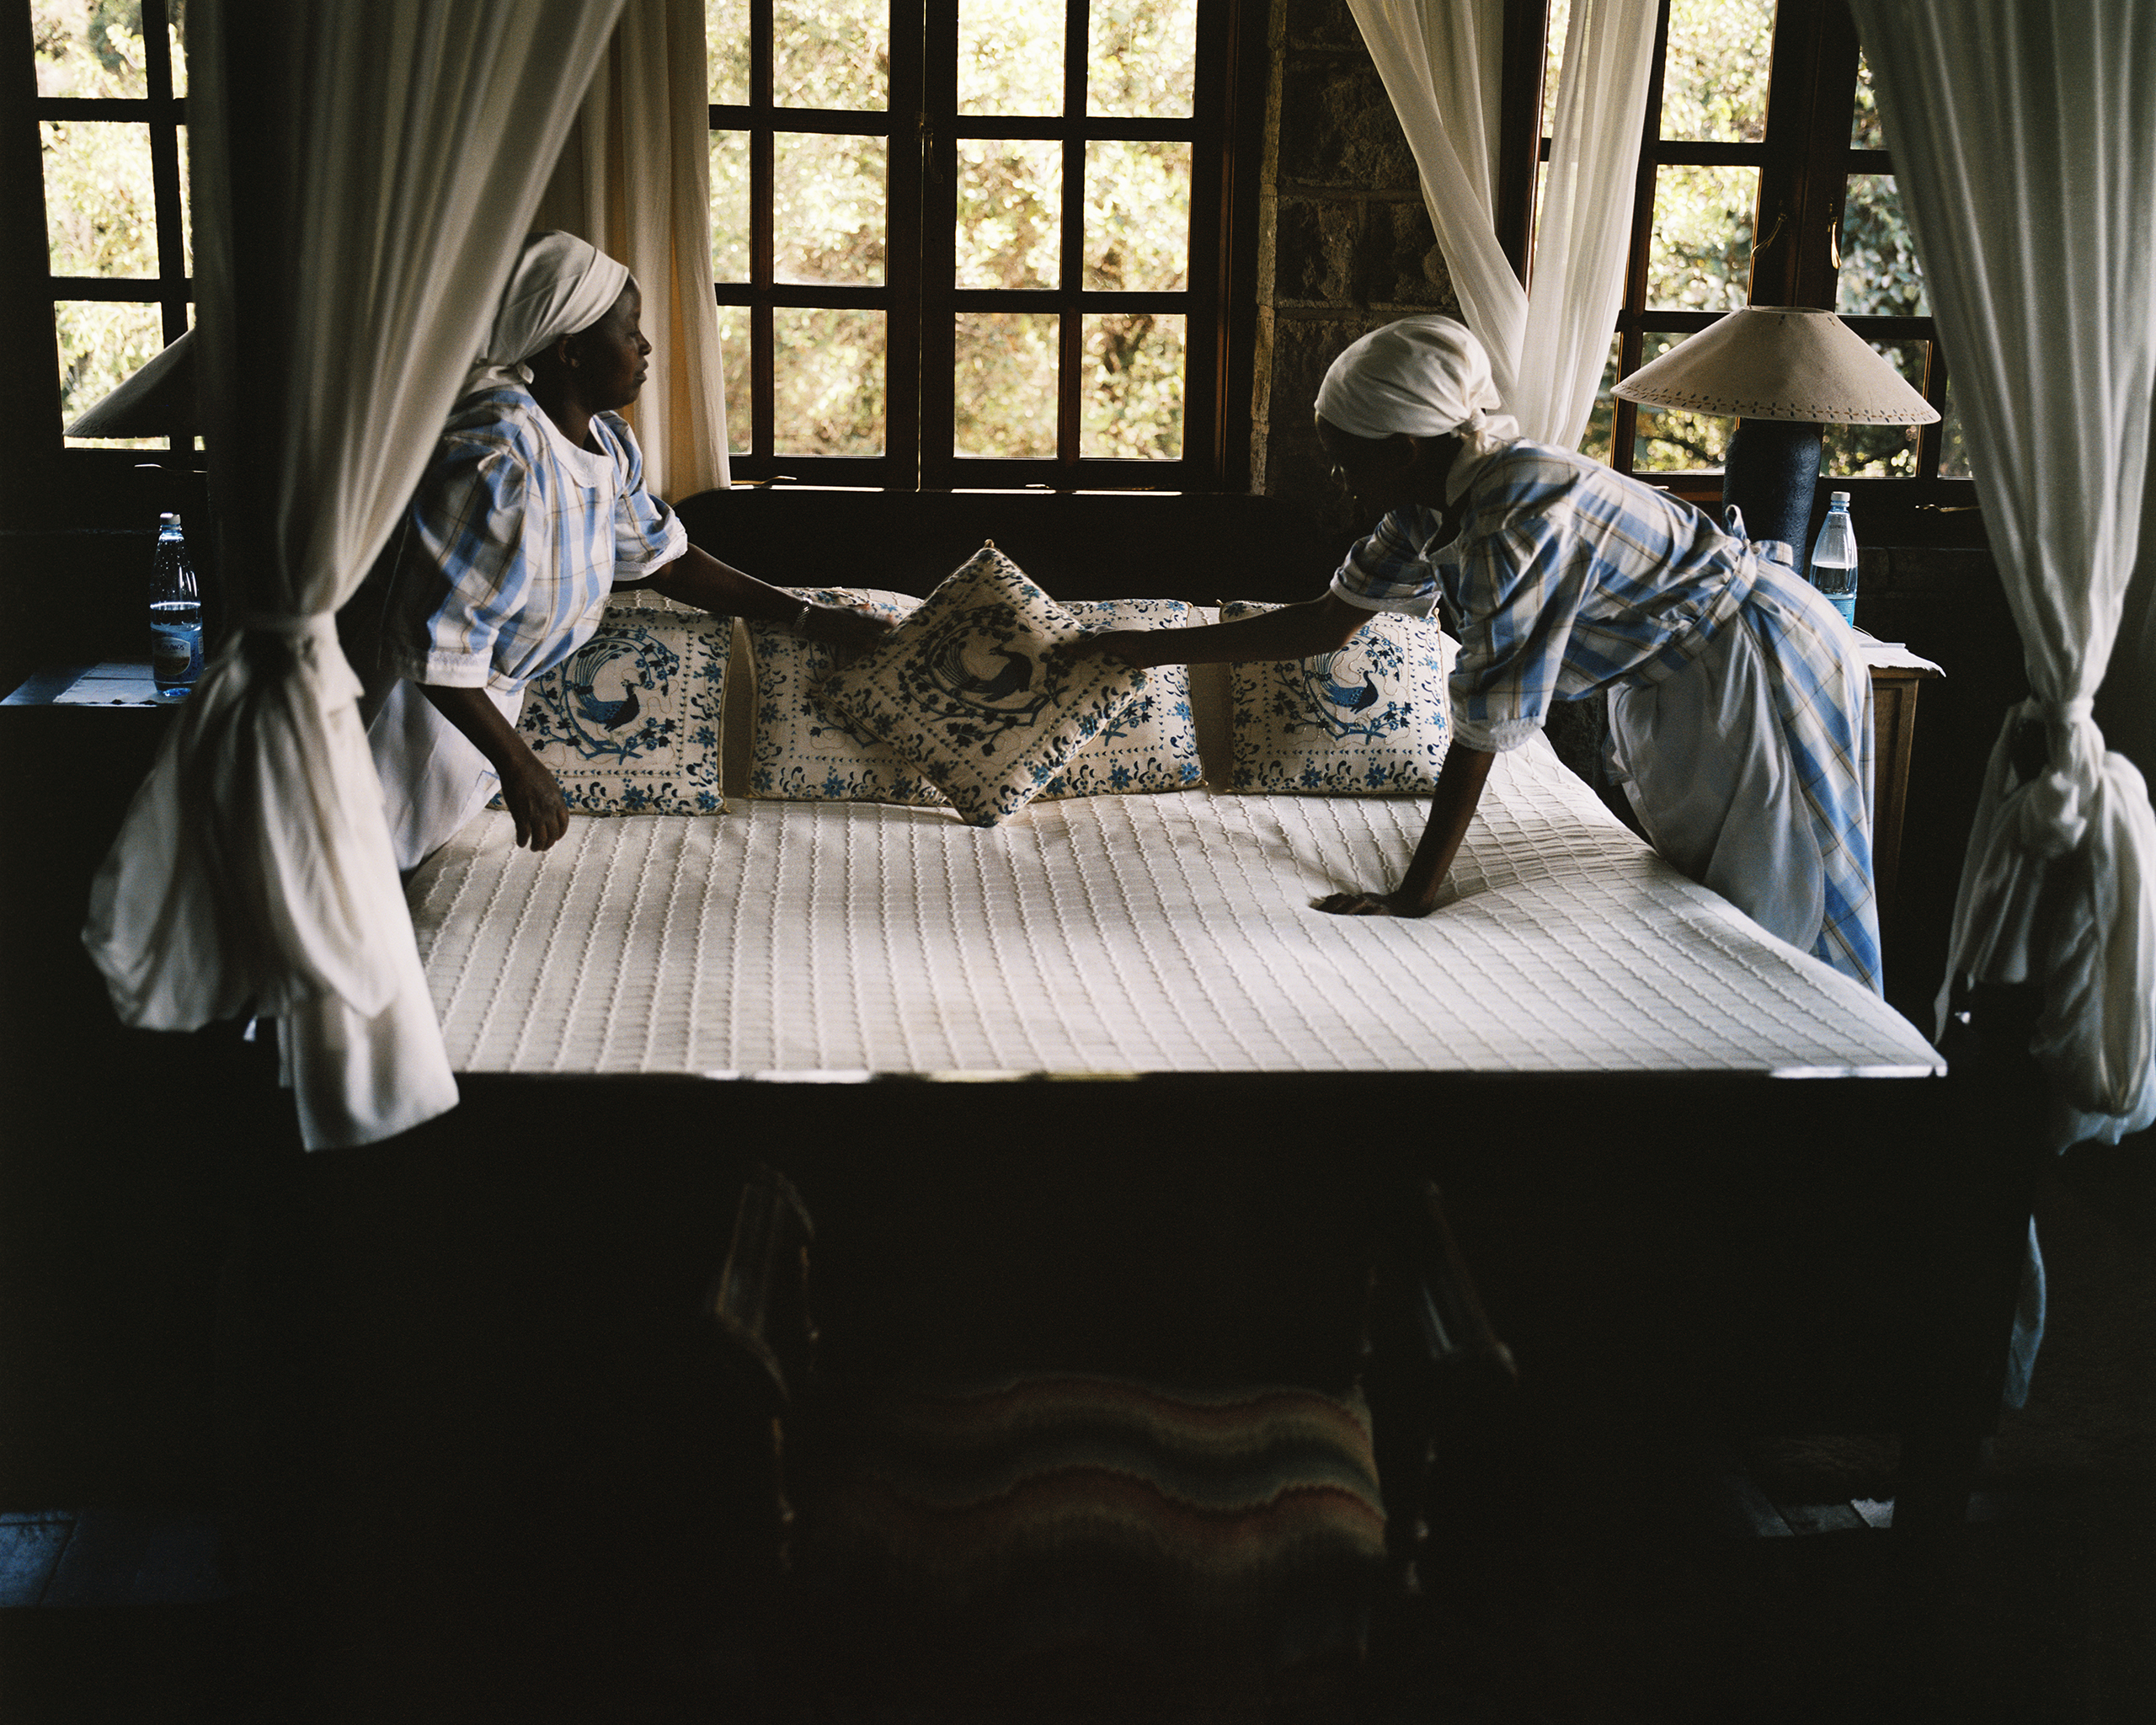 Maids prepare a room for a guest in a wealthy Kenyan household.                               2011